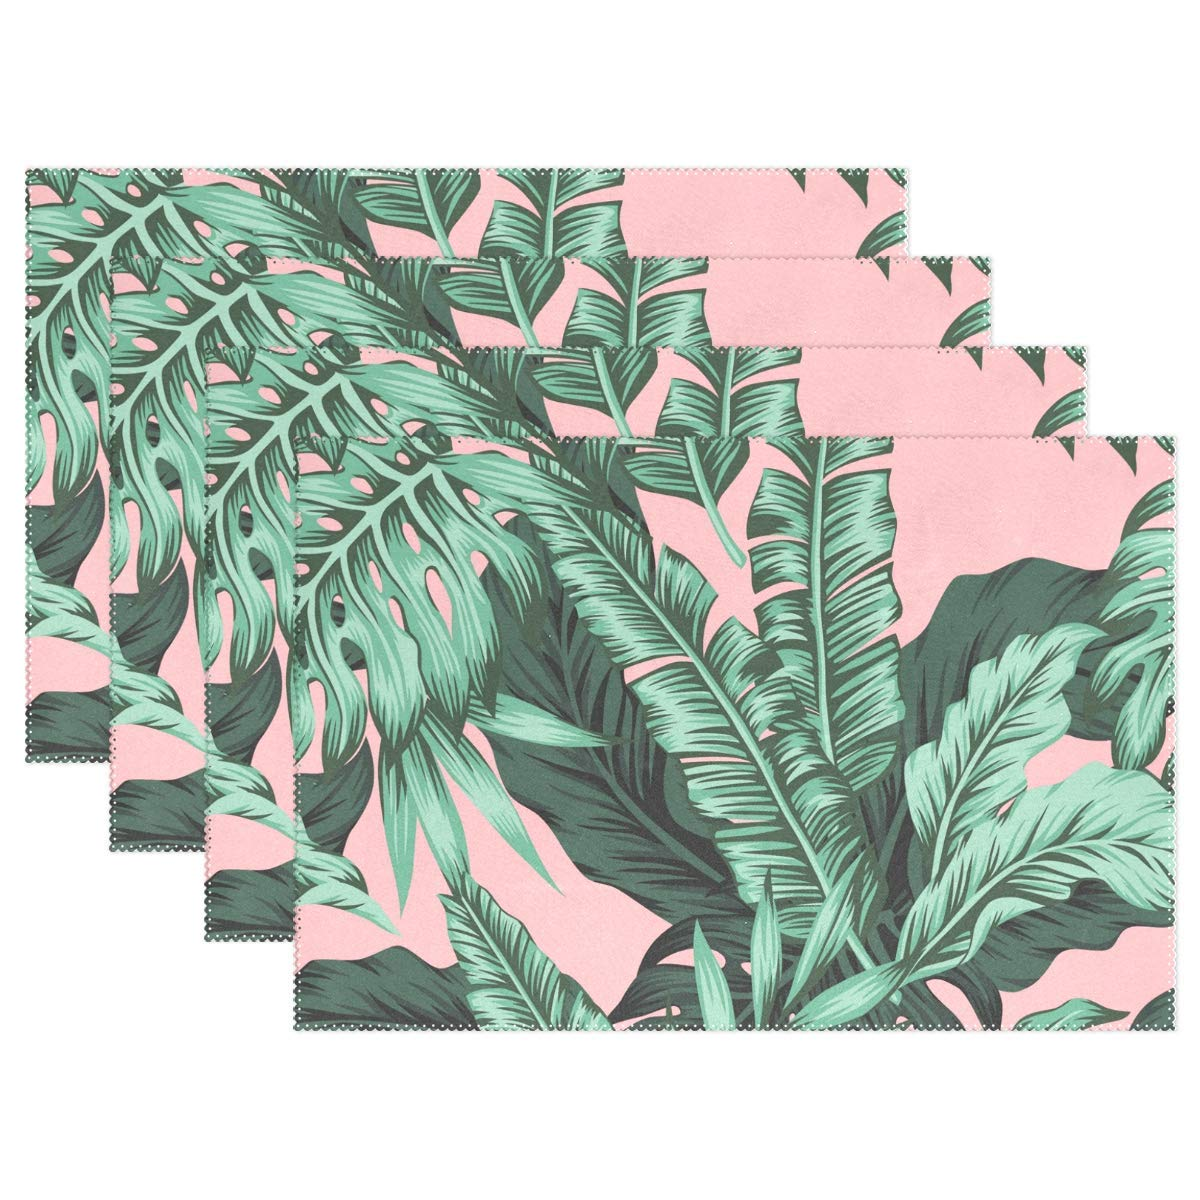 """THENAHOME Tropical Banana Leaves Placemats Heat Stain Resistant Anti-Skid Table Mats for Kitchen Dining Table (12""""x 18"""")"""